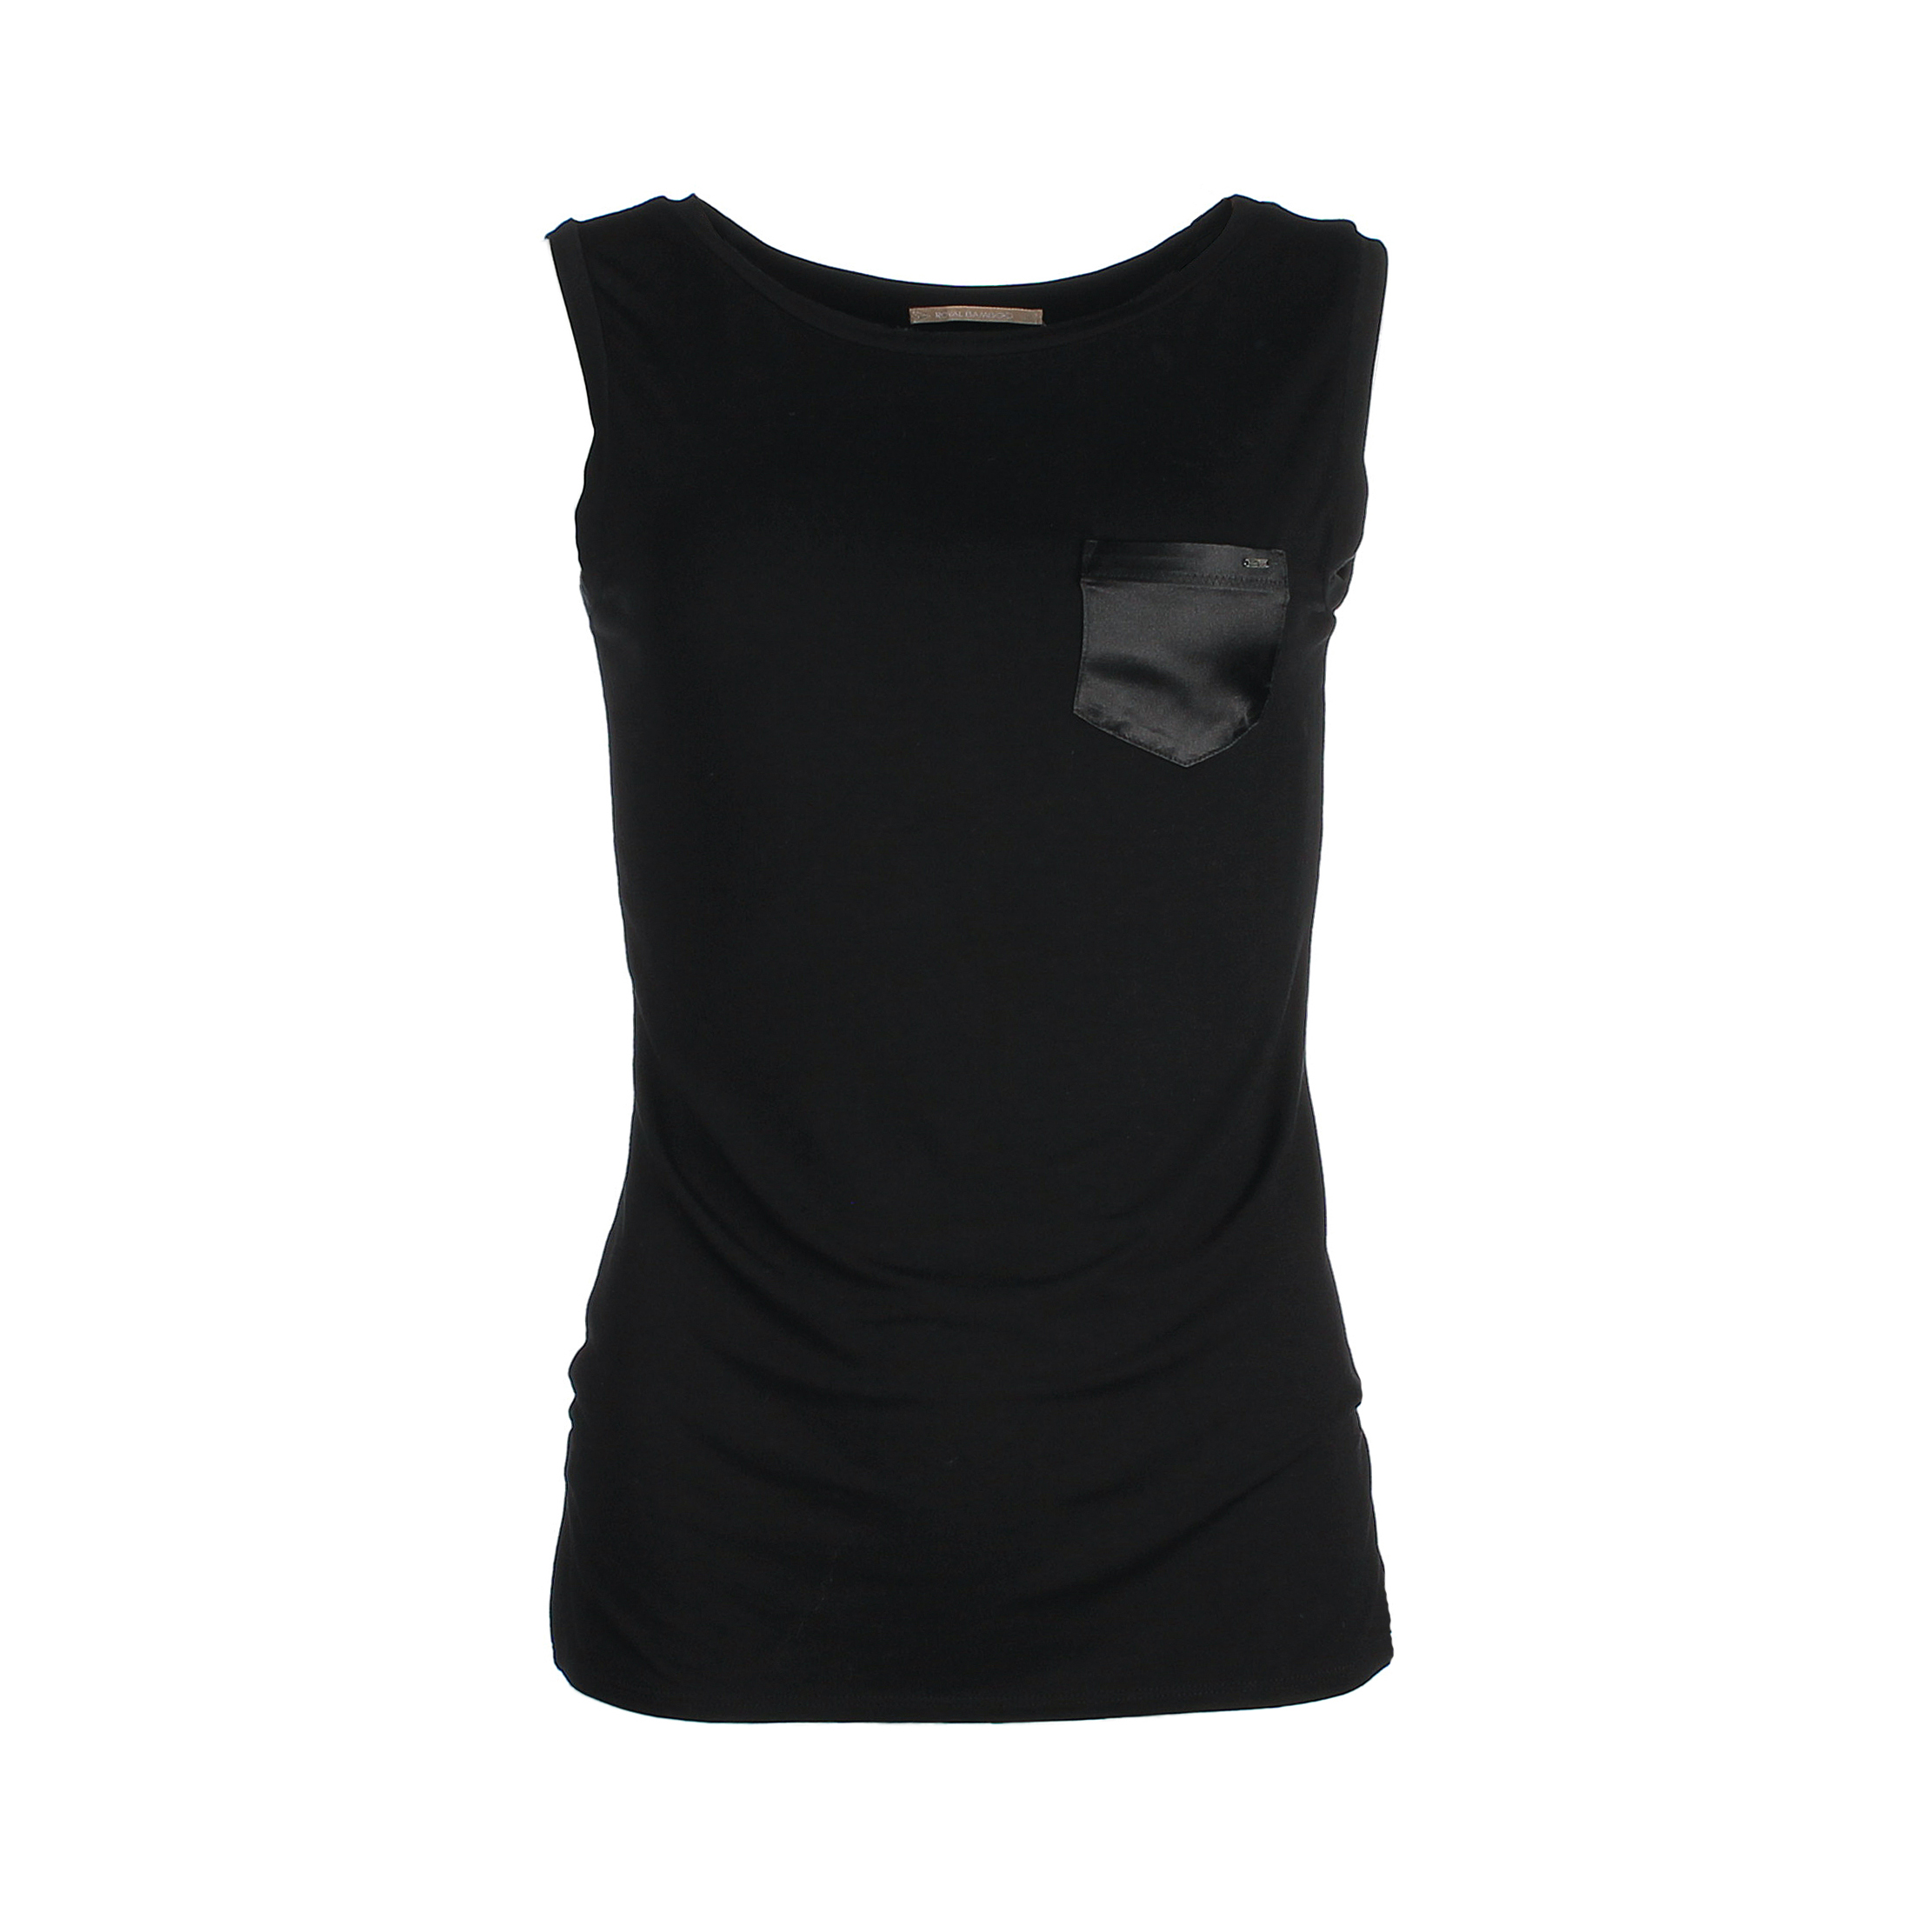 Sleeveless chest-pocket top bamboo - Zwart - Mouwloze top borstzakje - zwart